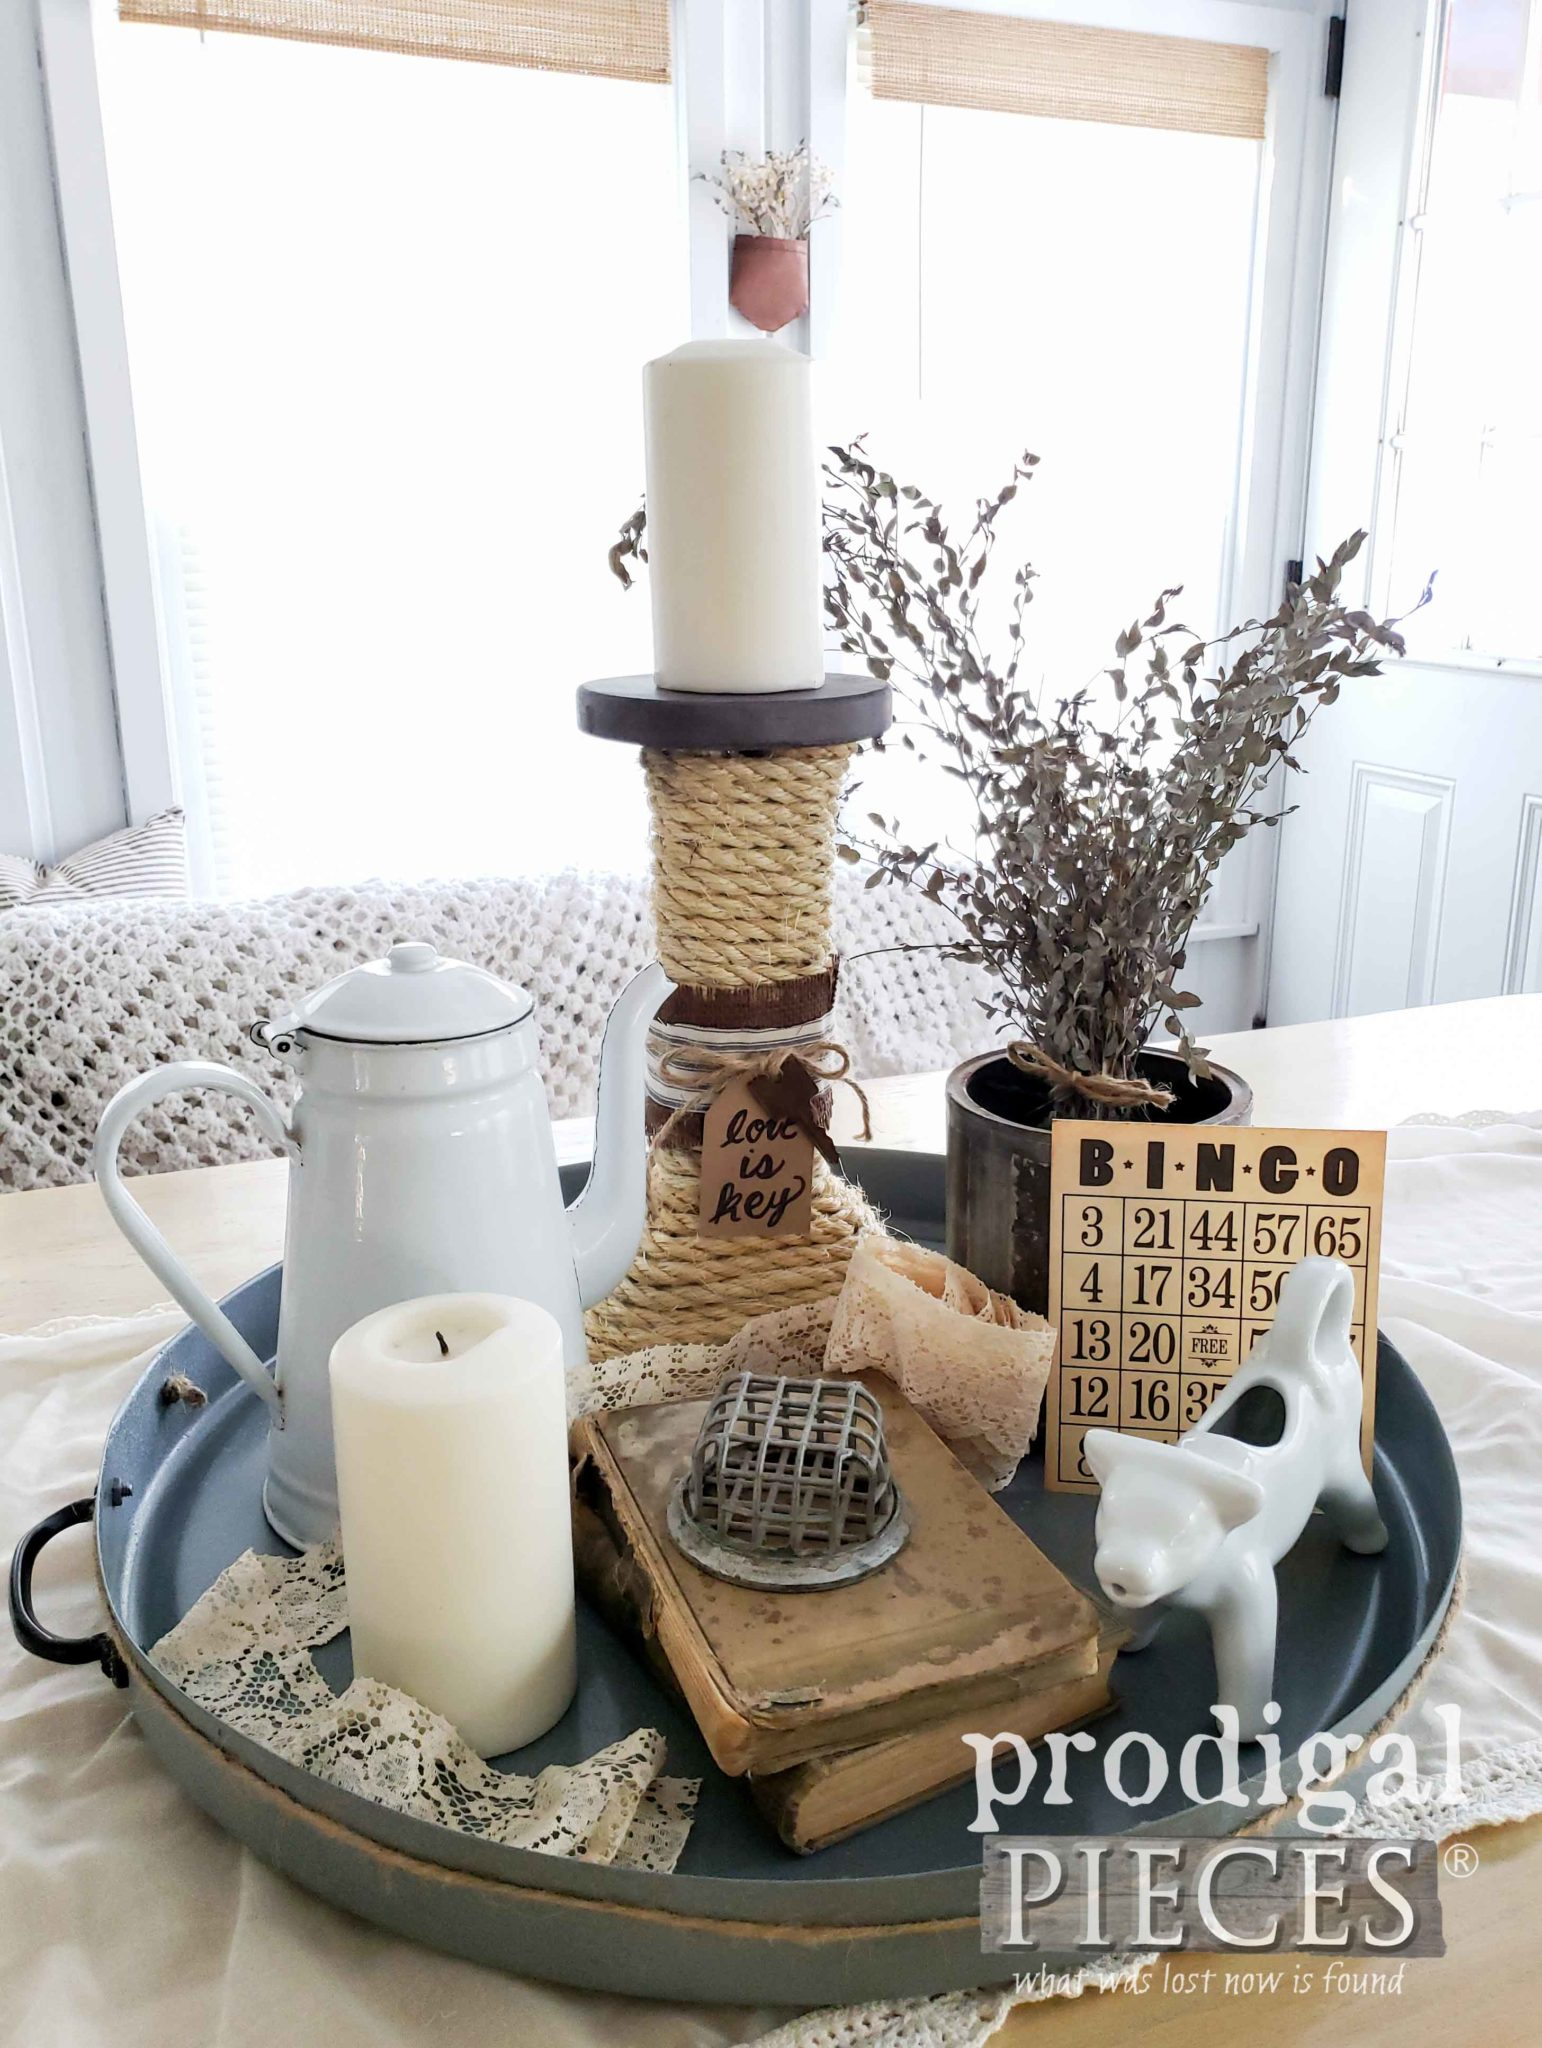 Create a Rustic Farmhouse Tray Vignette with Vintage Finds | Prodigal Pieces | prodigalpieces.com